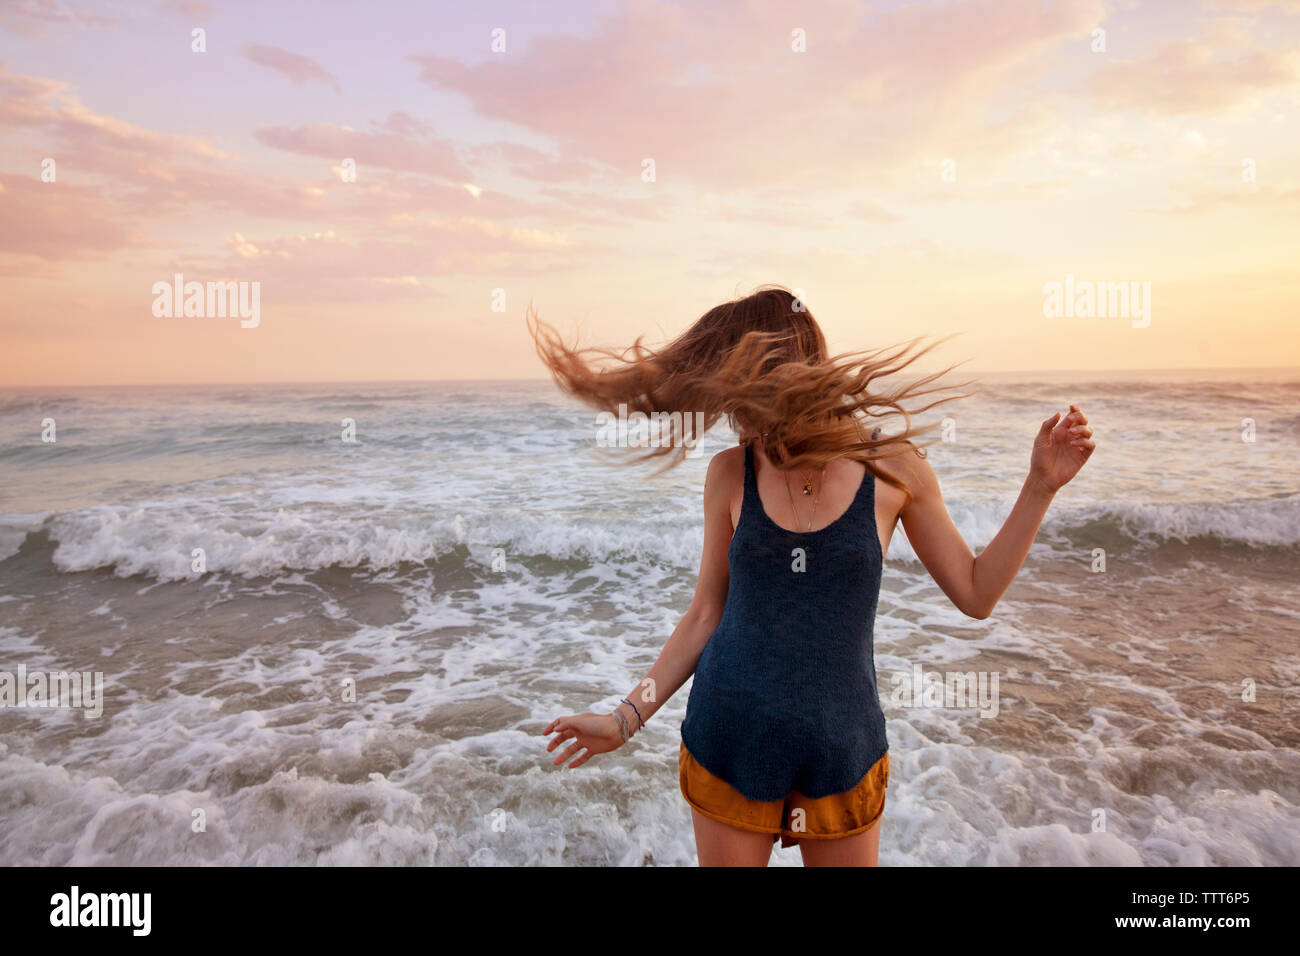 Woman tossing hair while standing at beach - Stock Image